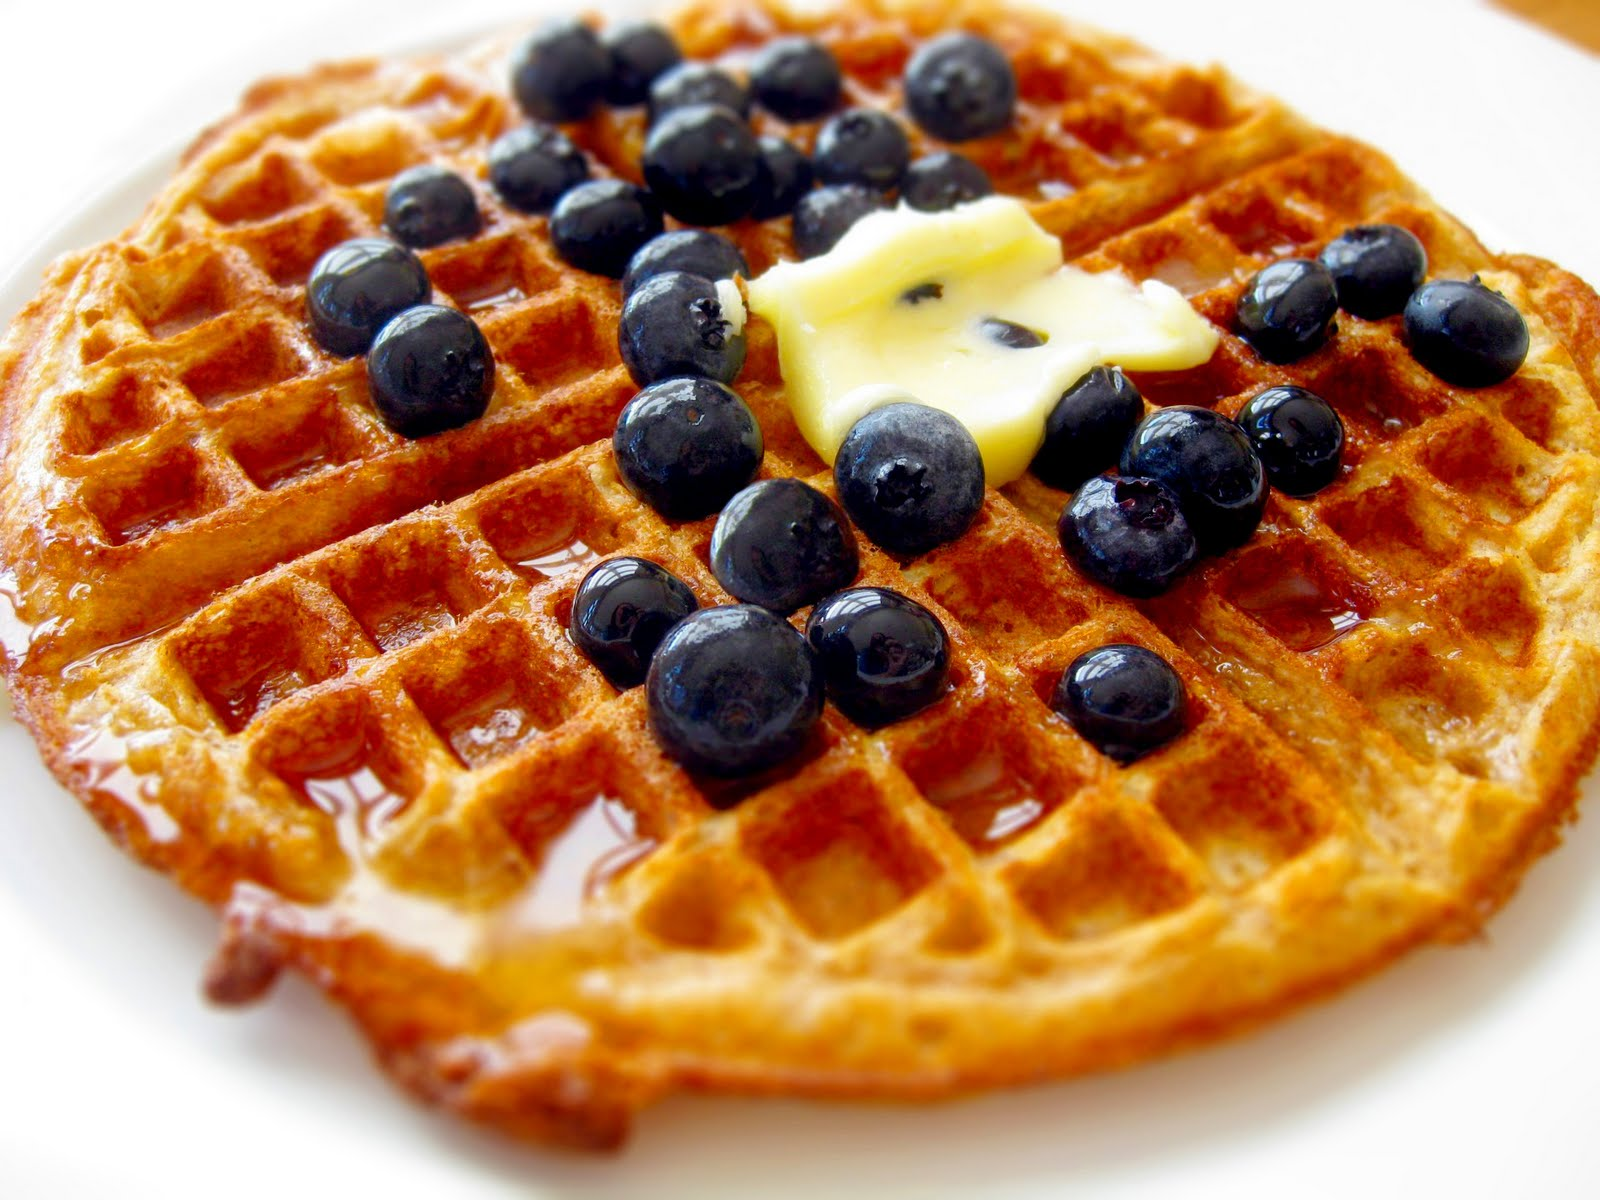 Epic closeup of a waffle with blueberries.